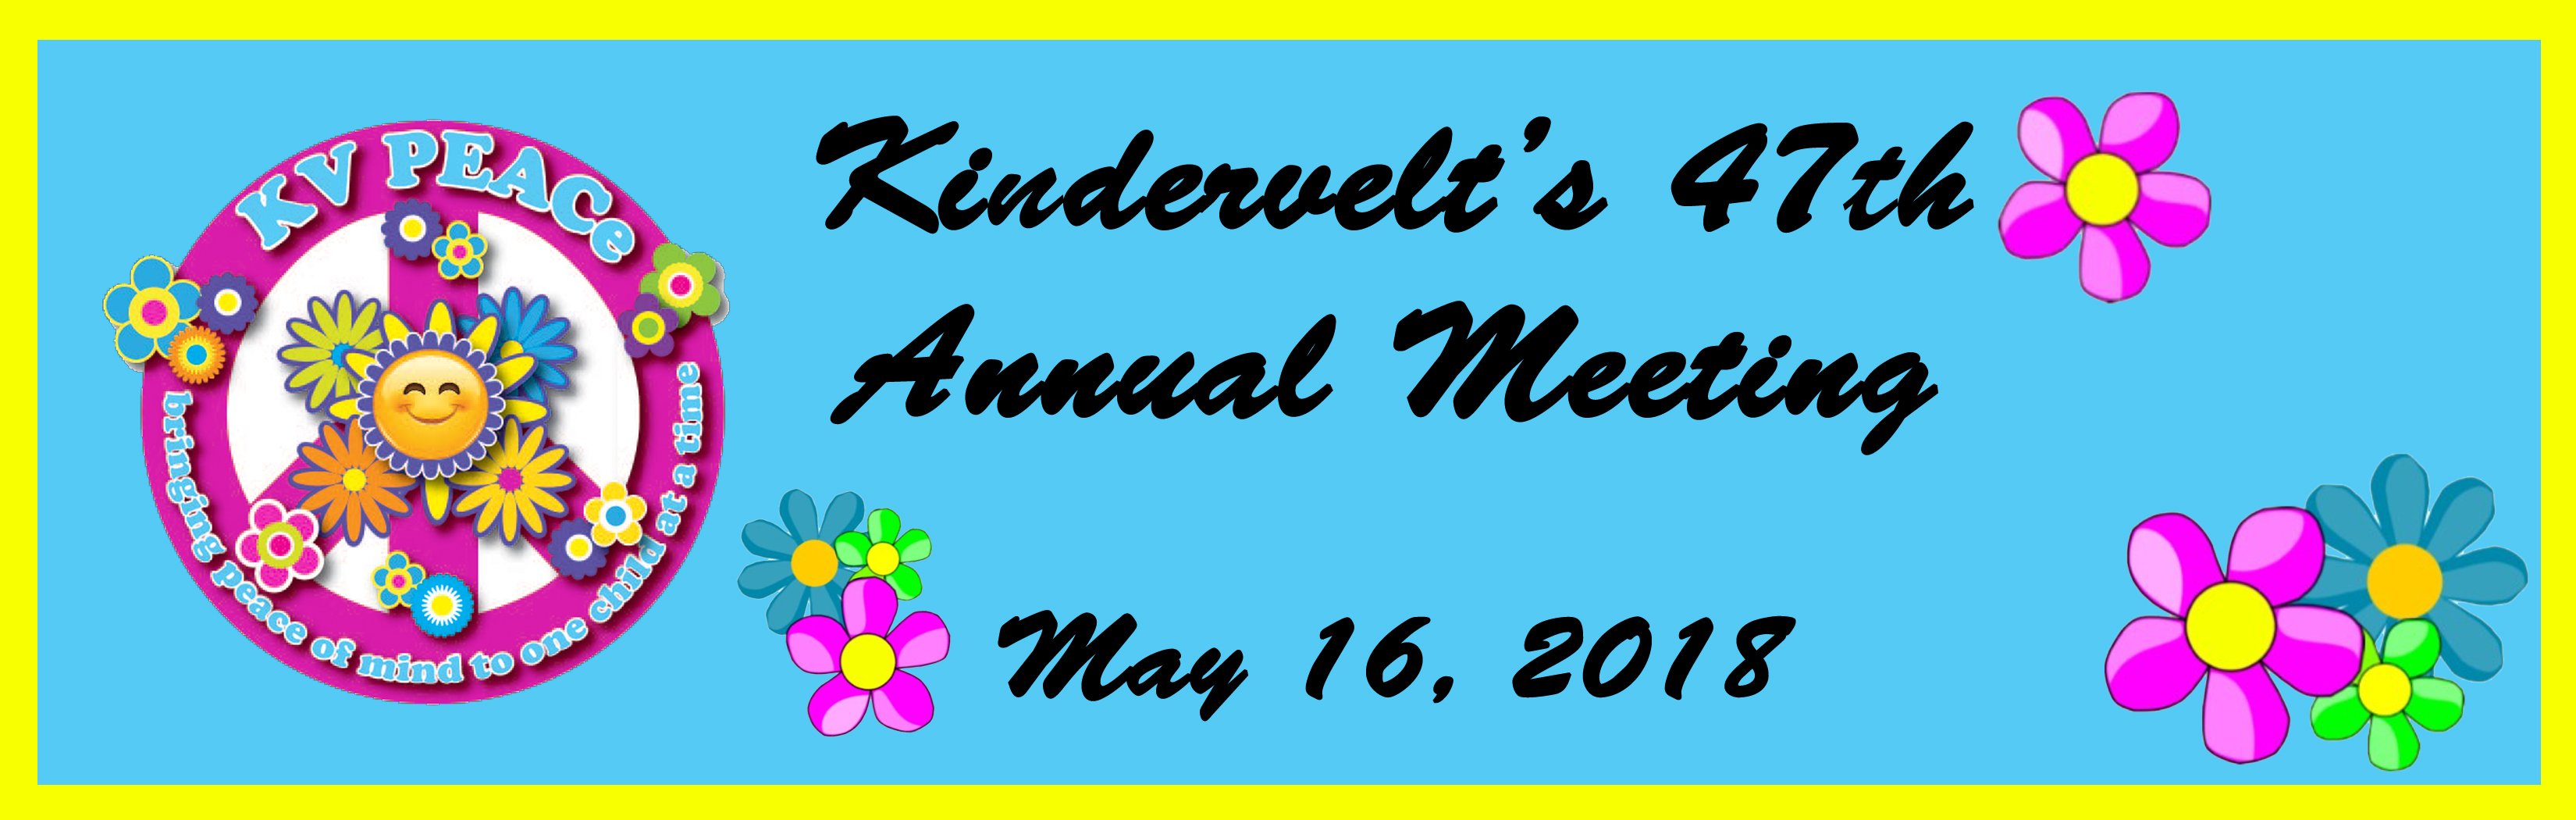 KV Annual Meeting